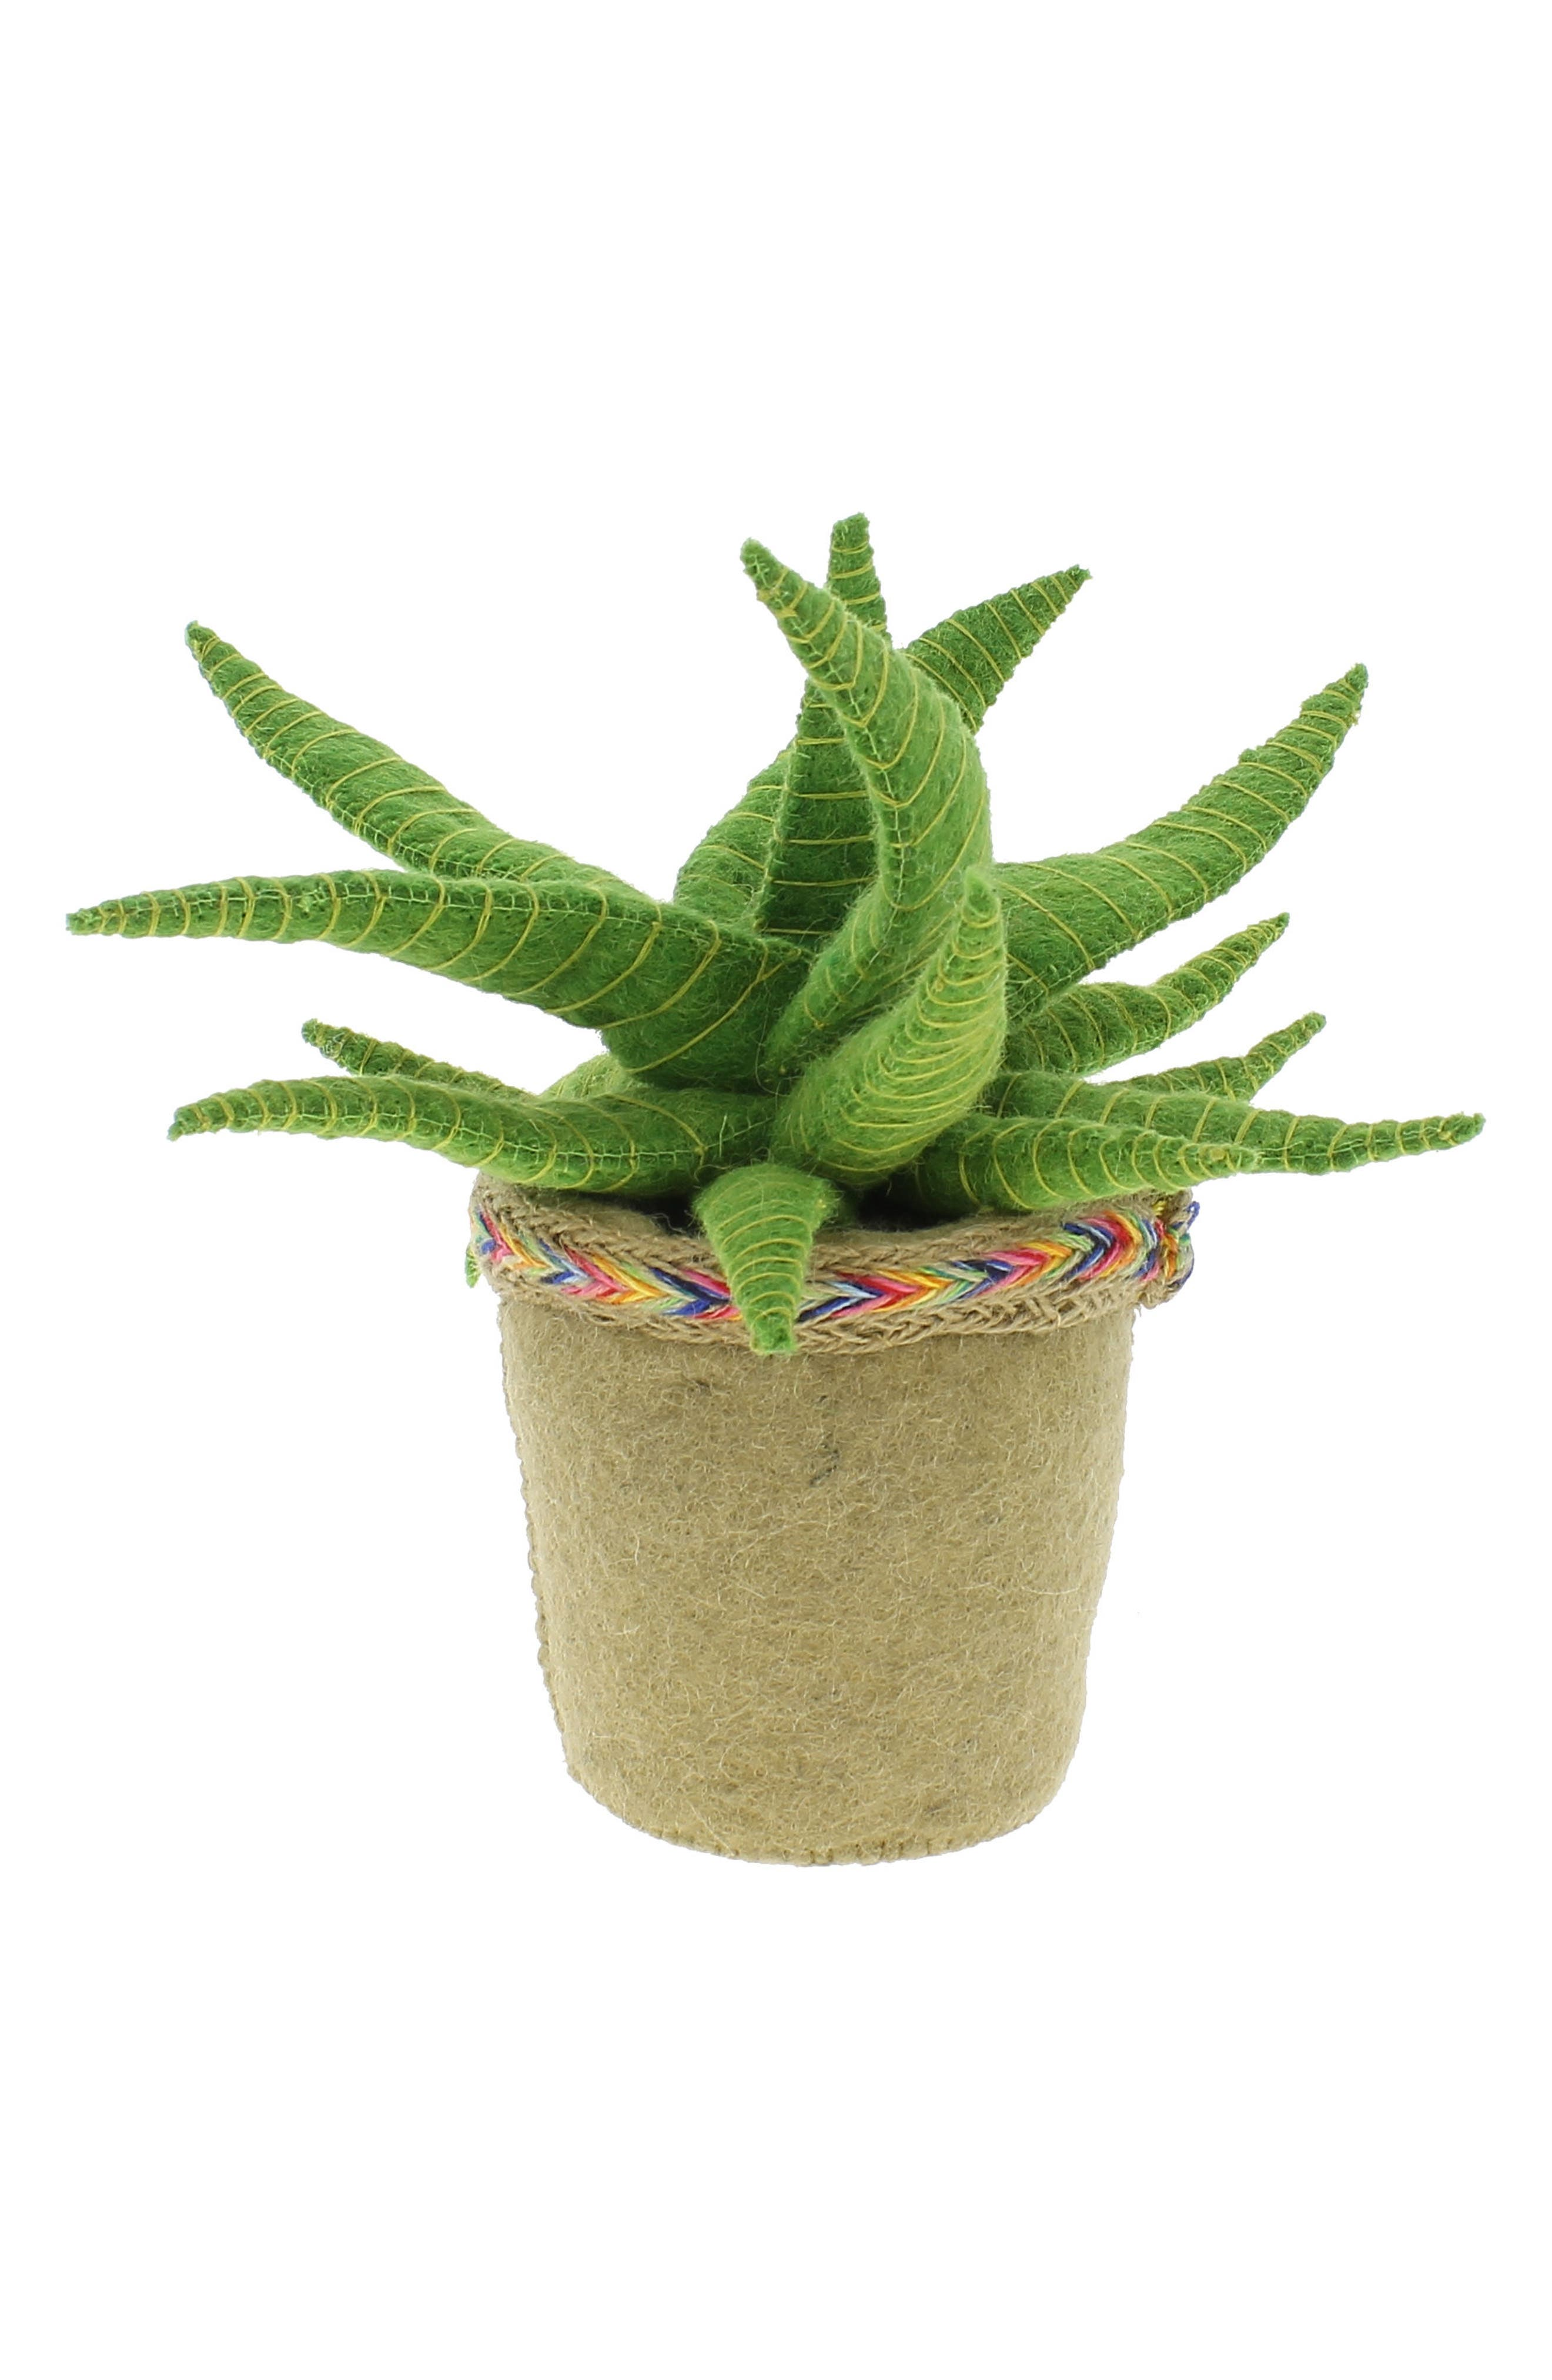 Stuffed Aloe Vera Cactus Weighted Bookend,                         Main,                         color, Green